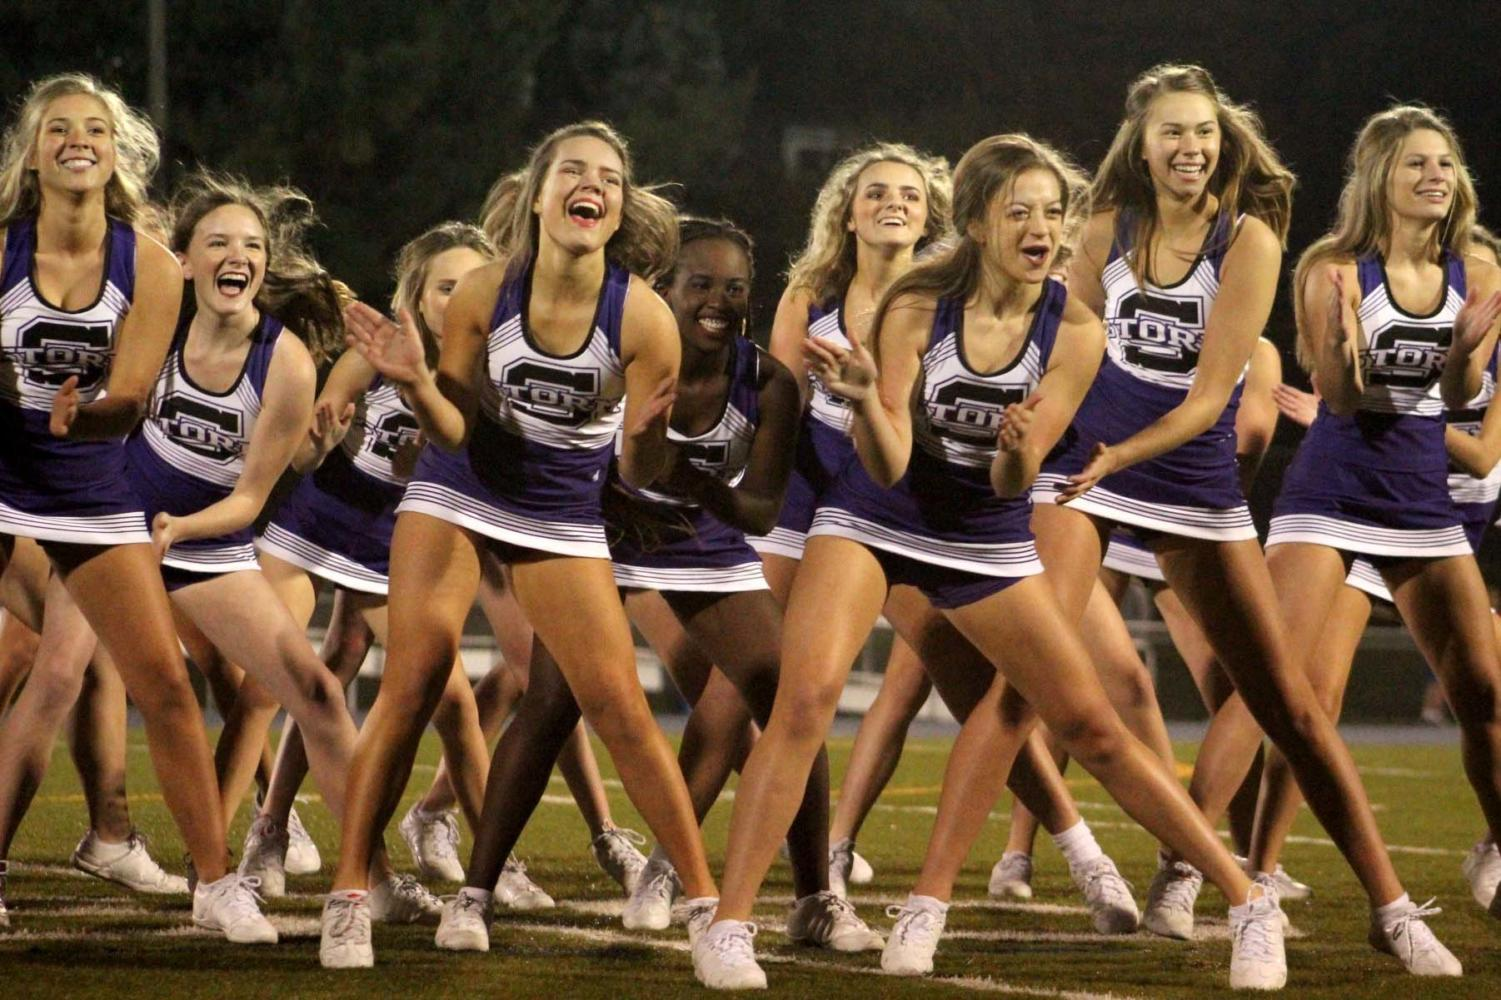 Seniors Mimi Wright, Liz Oltjen, Savannah Childress, and Lola Tebbe perform the dancing portion of the cheer routine performed at Rockhurst halftime Oct. 19. The routine was organized by the seniors, as is tradition.